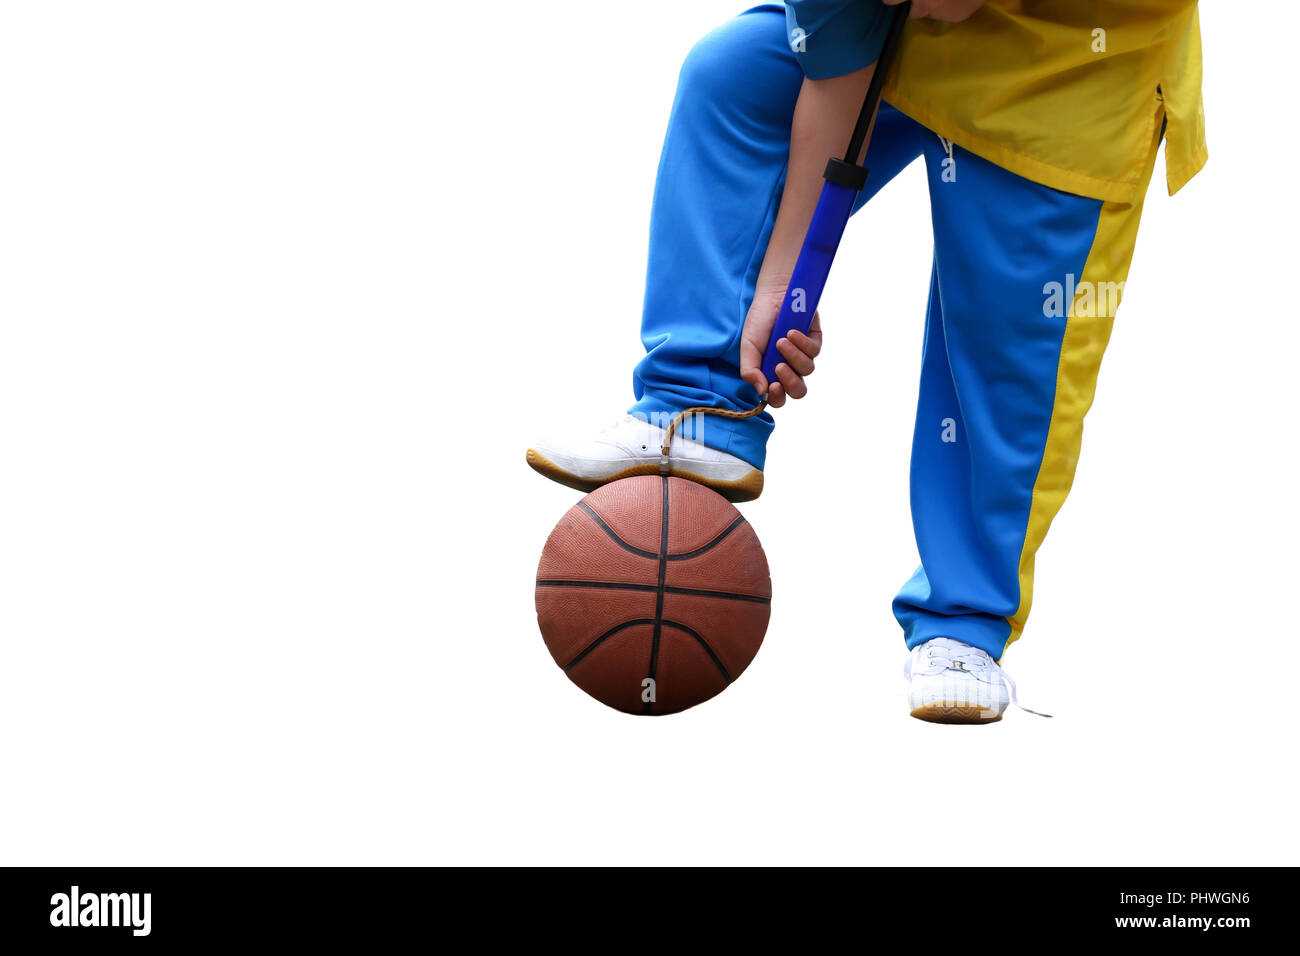 School boe hand pumping up basketball over white background - Stock Image